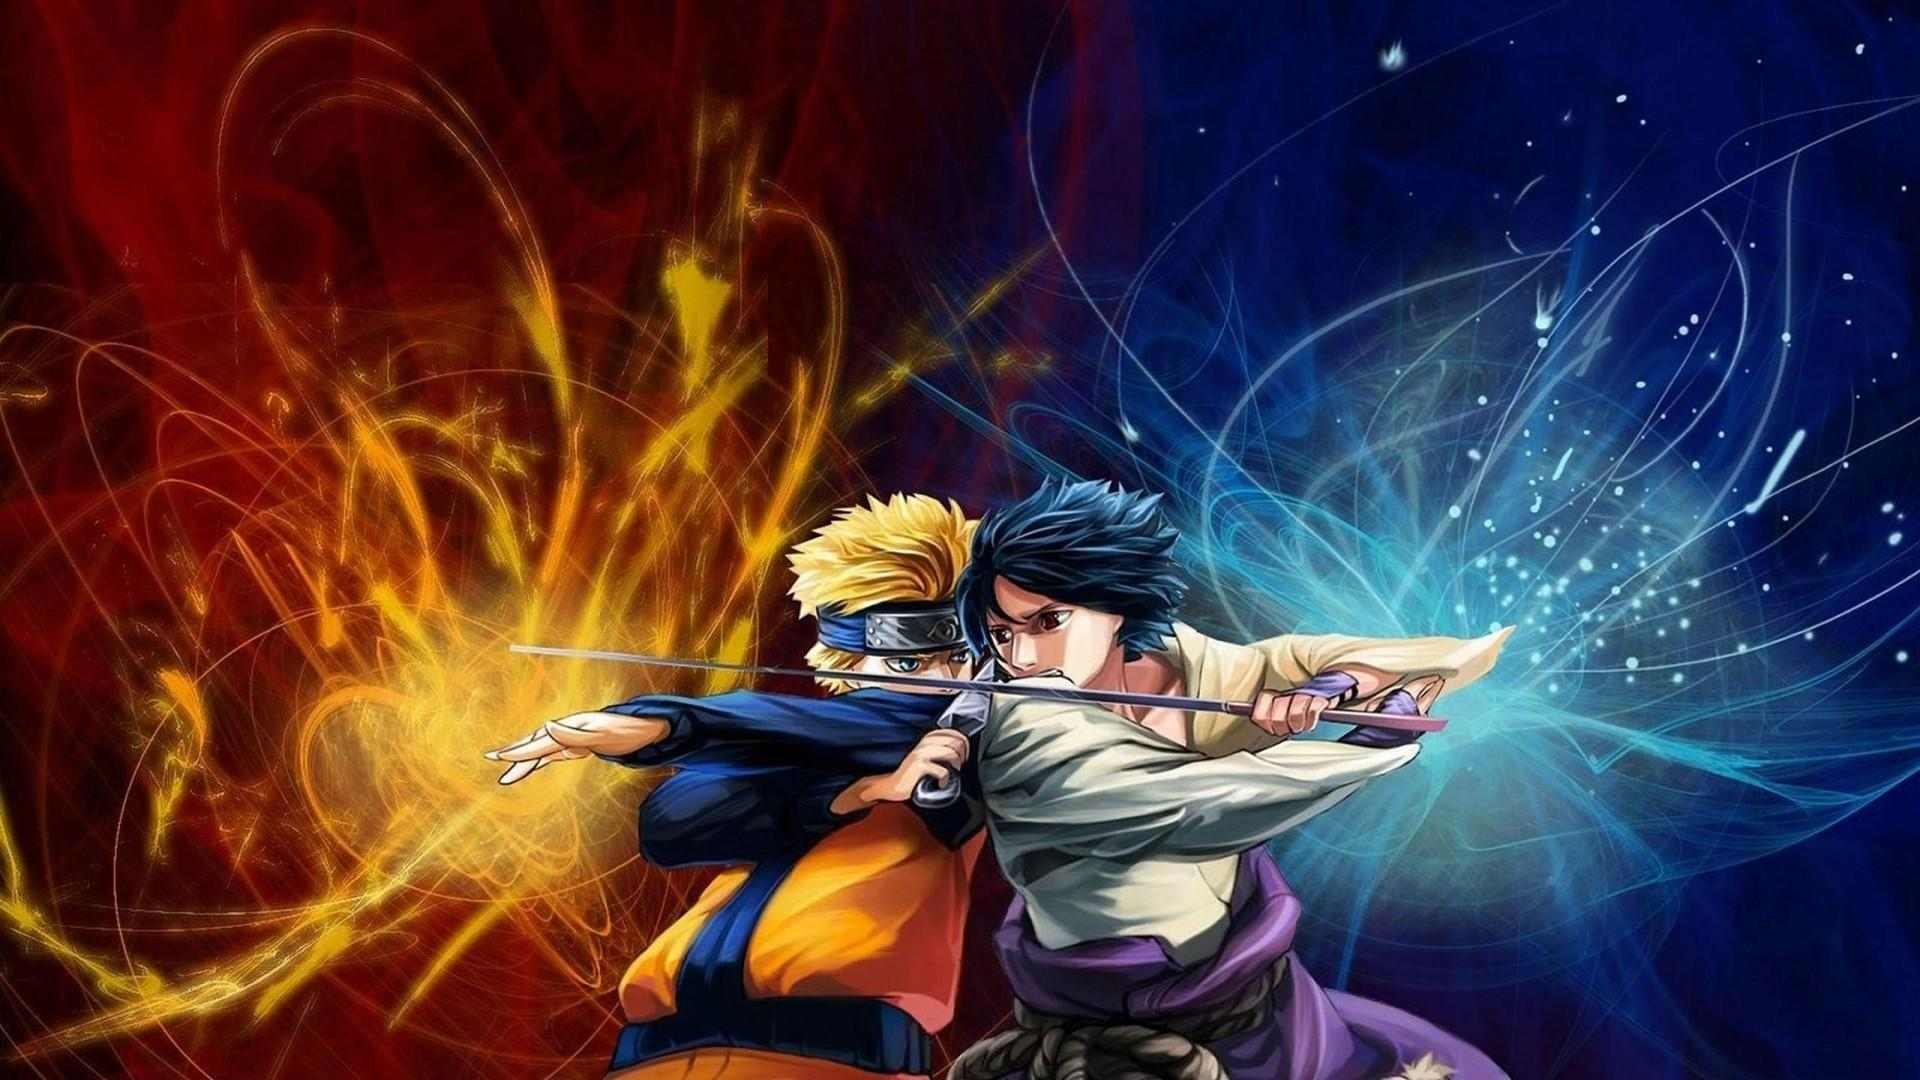 Naruto Vs Sasuke Naruto Anime Wallpapers